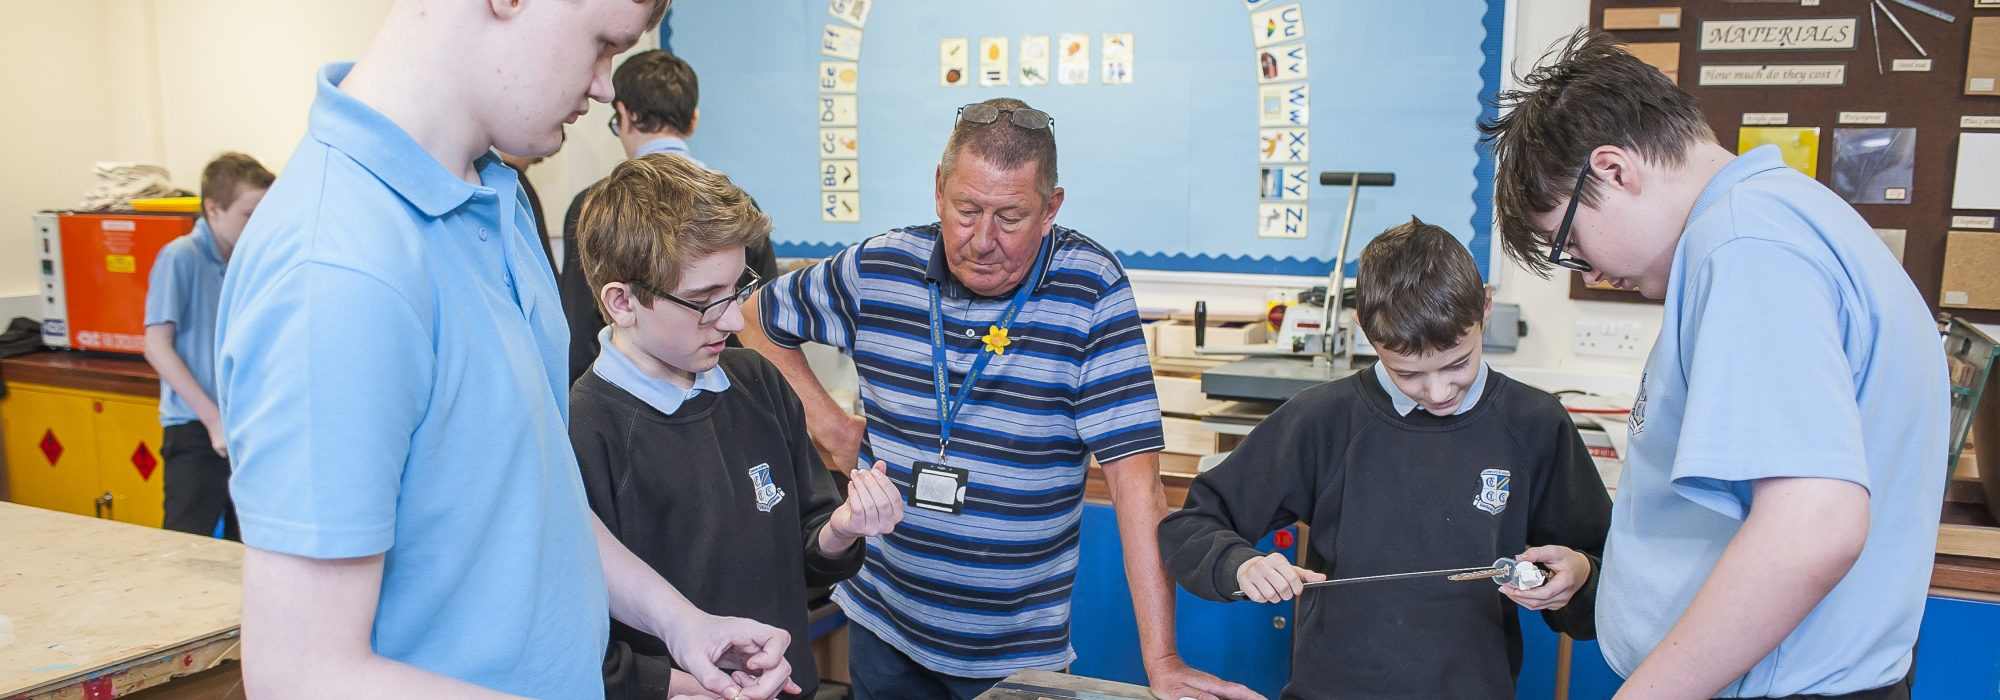 Pupils and teacher working in class